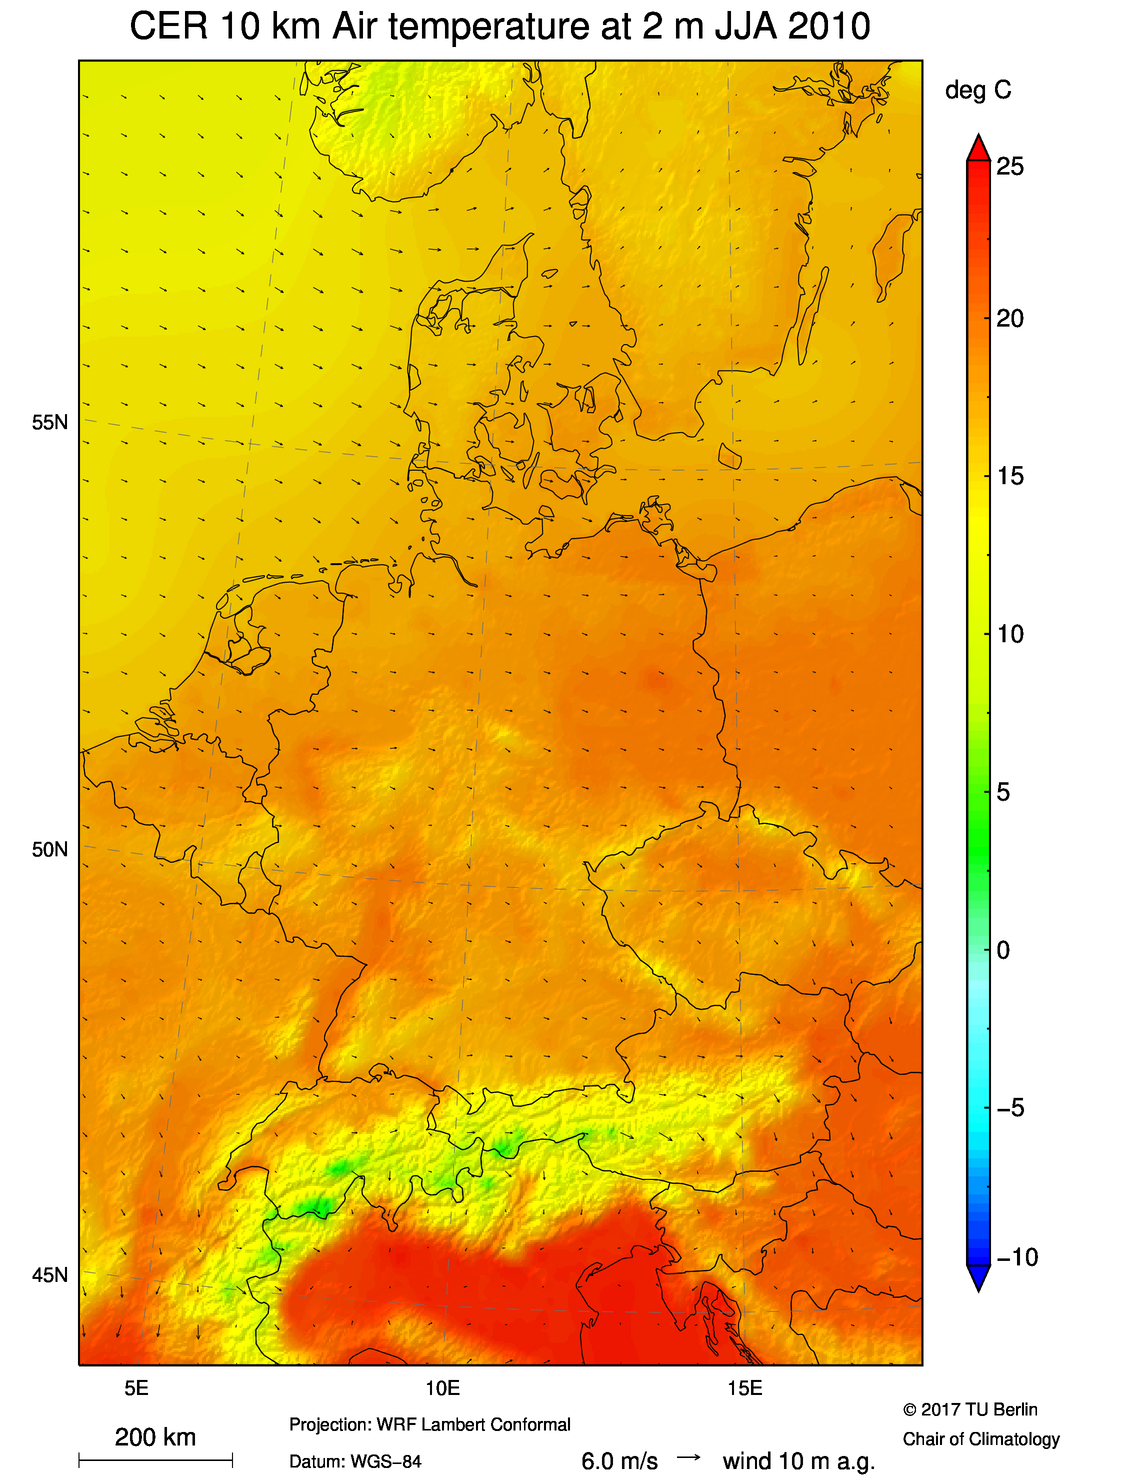 Mean Air Temperature at 2 m JJA 2010